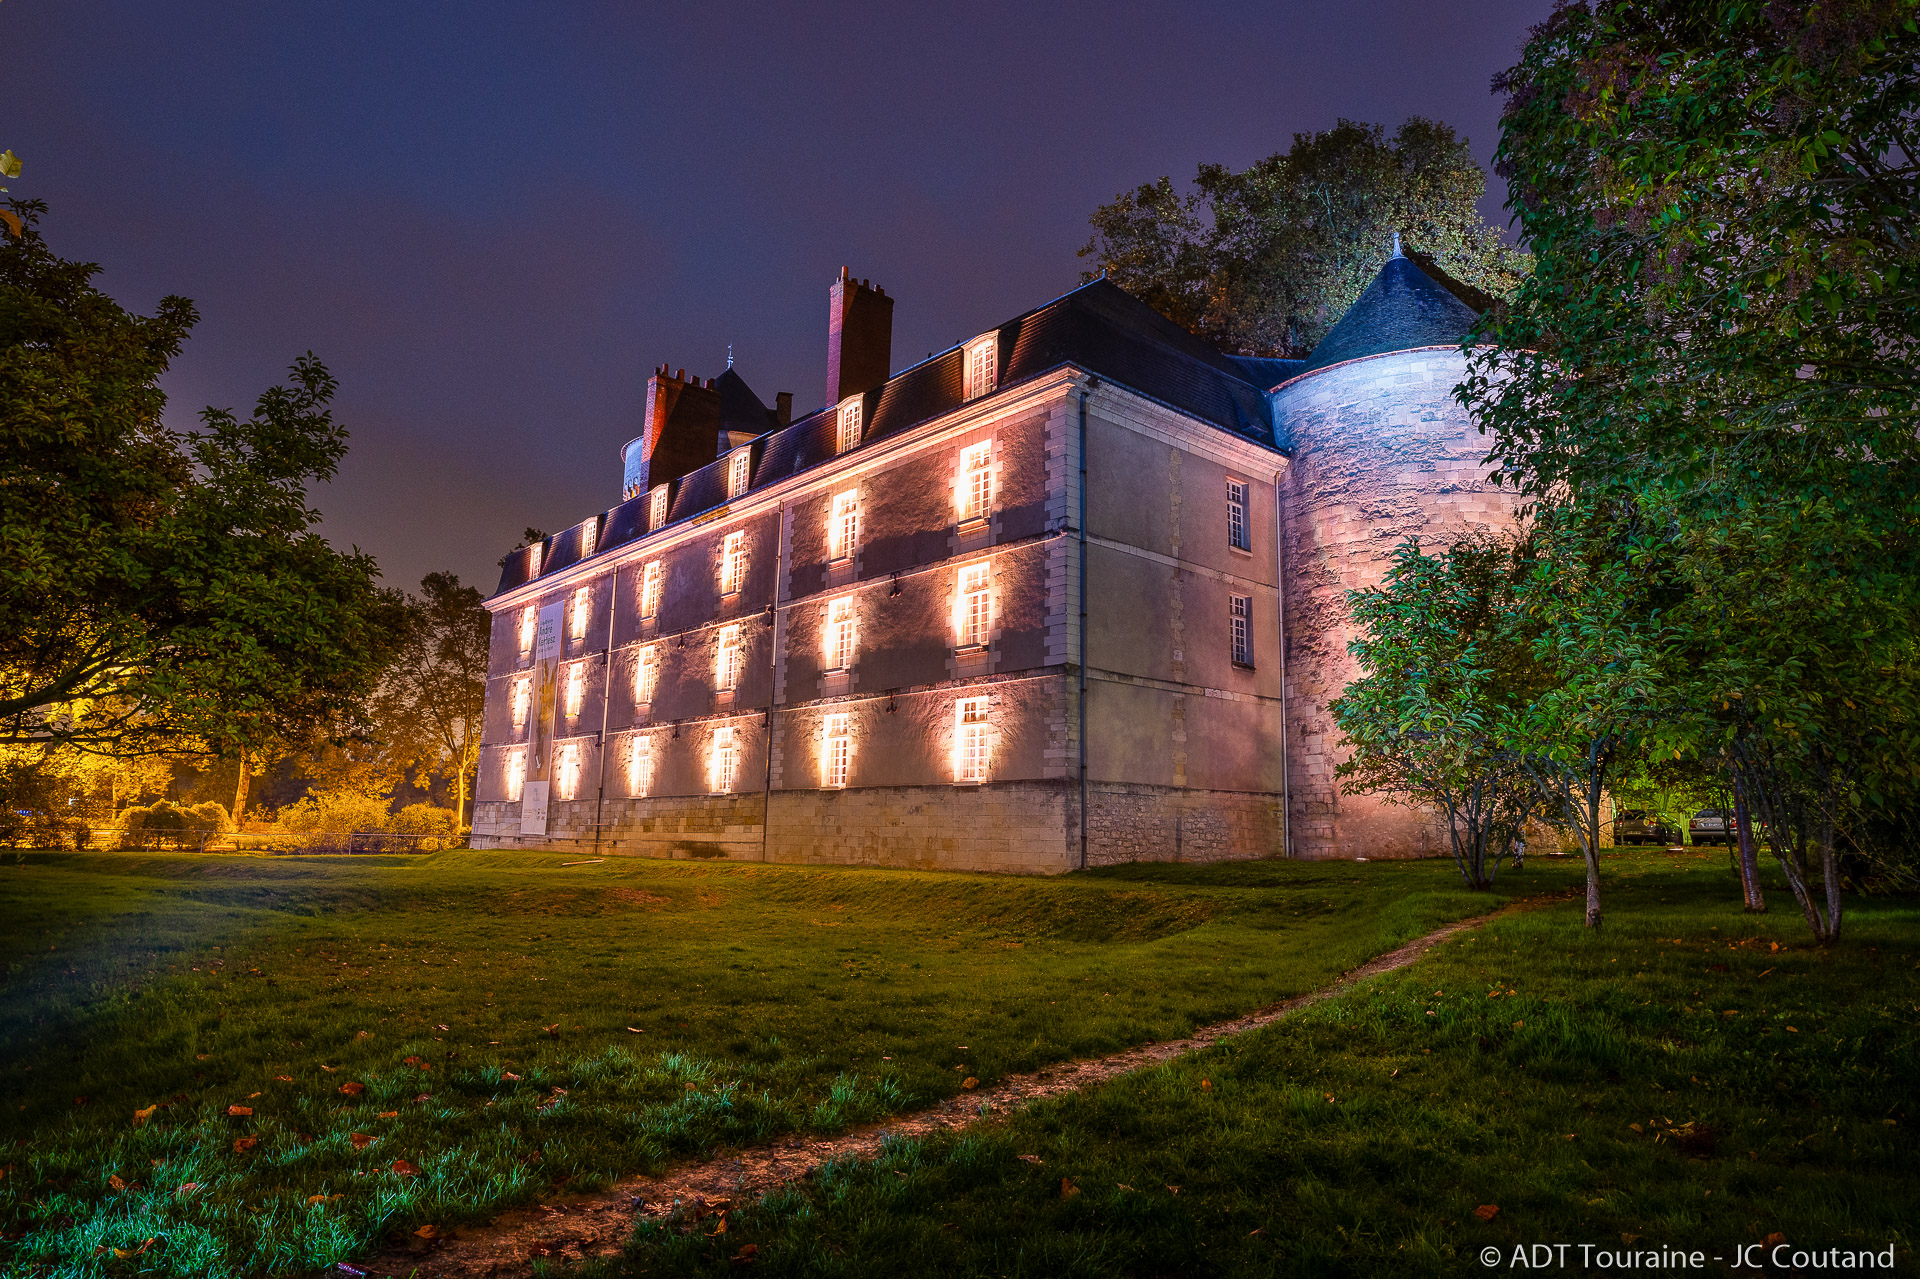 Château de Tours - Illuminated walking experience